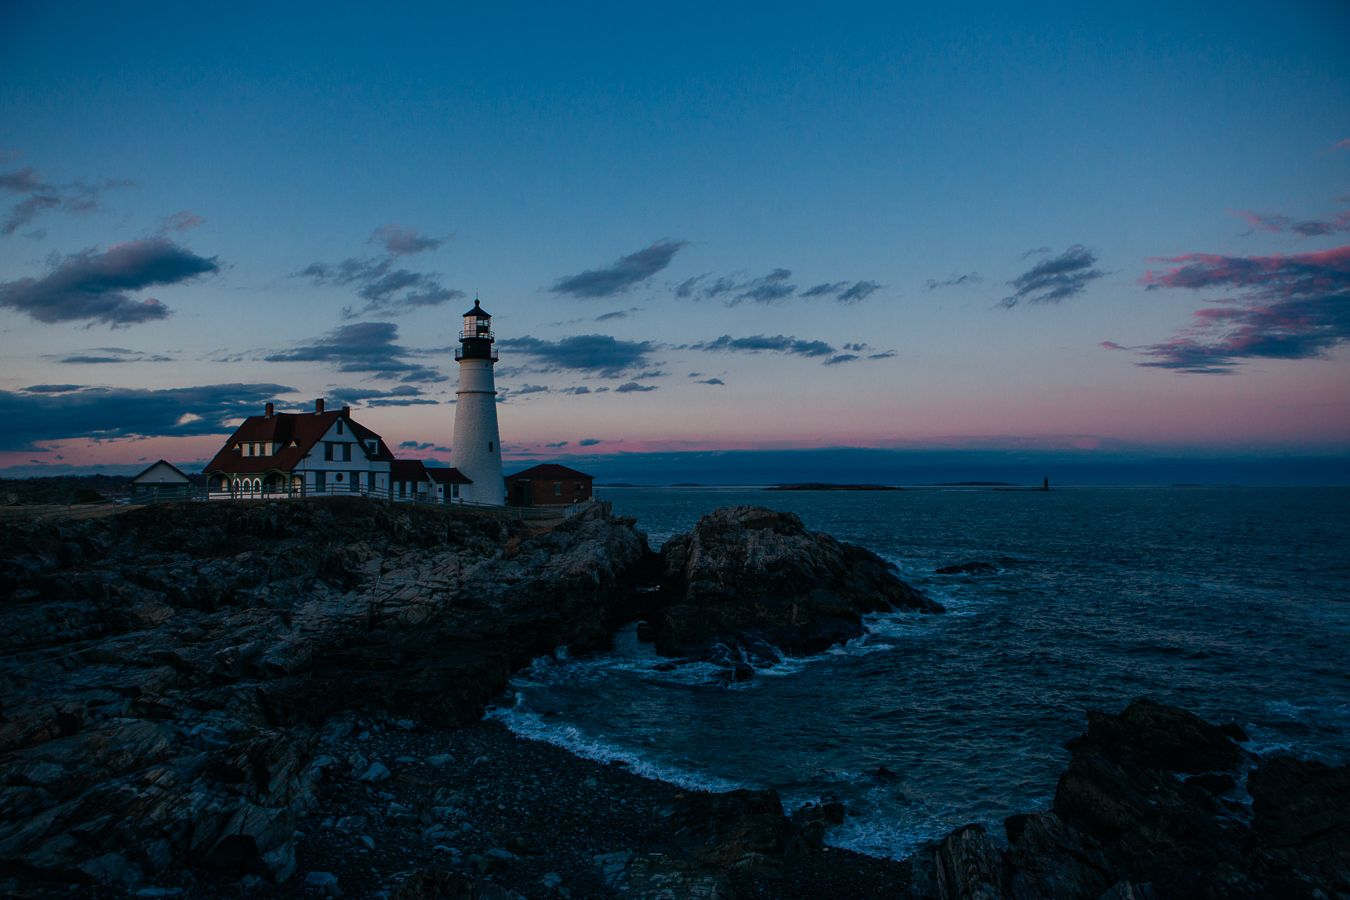 I made it to Portland and rushed to this famous lighthouse, but was 10 min late to watch the sun set. I still got to see this beautiful colorshow though!